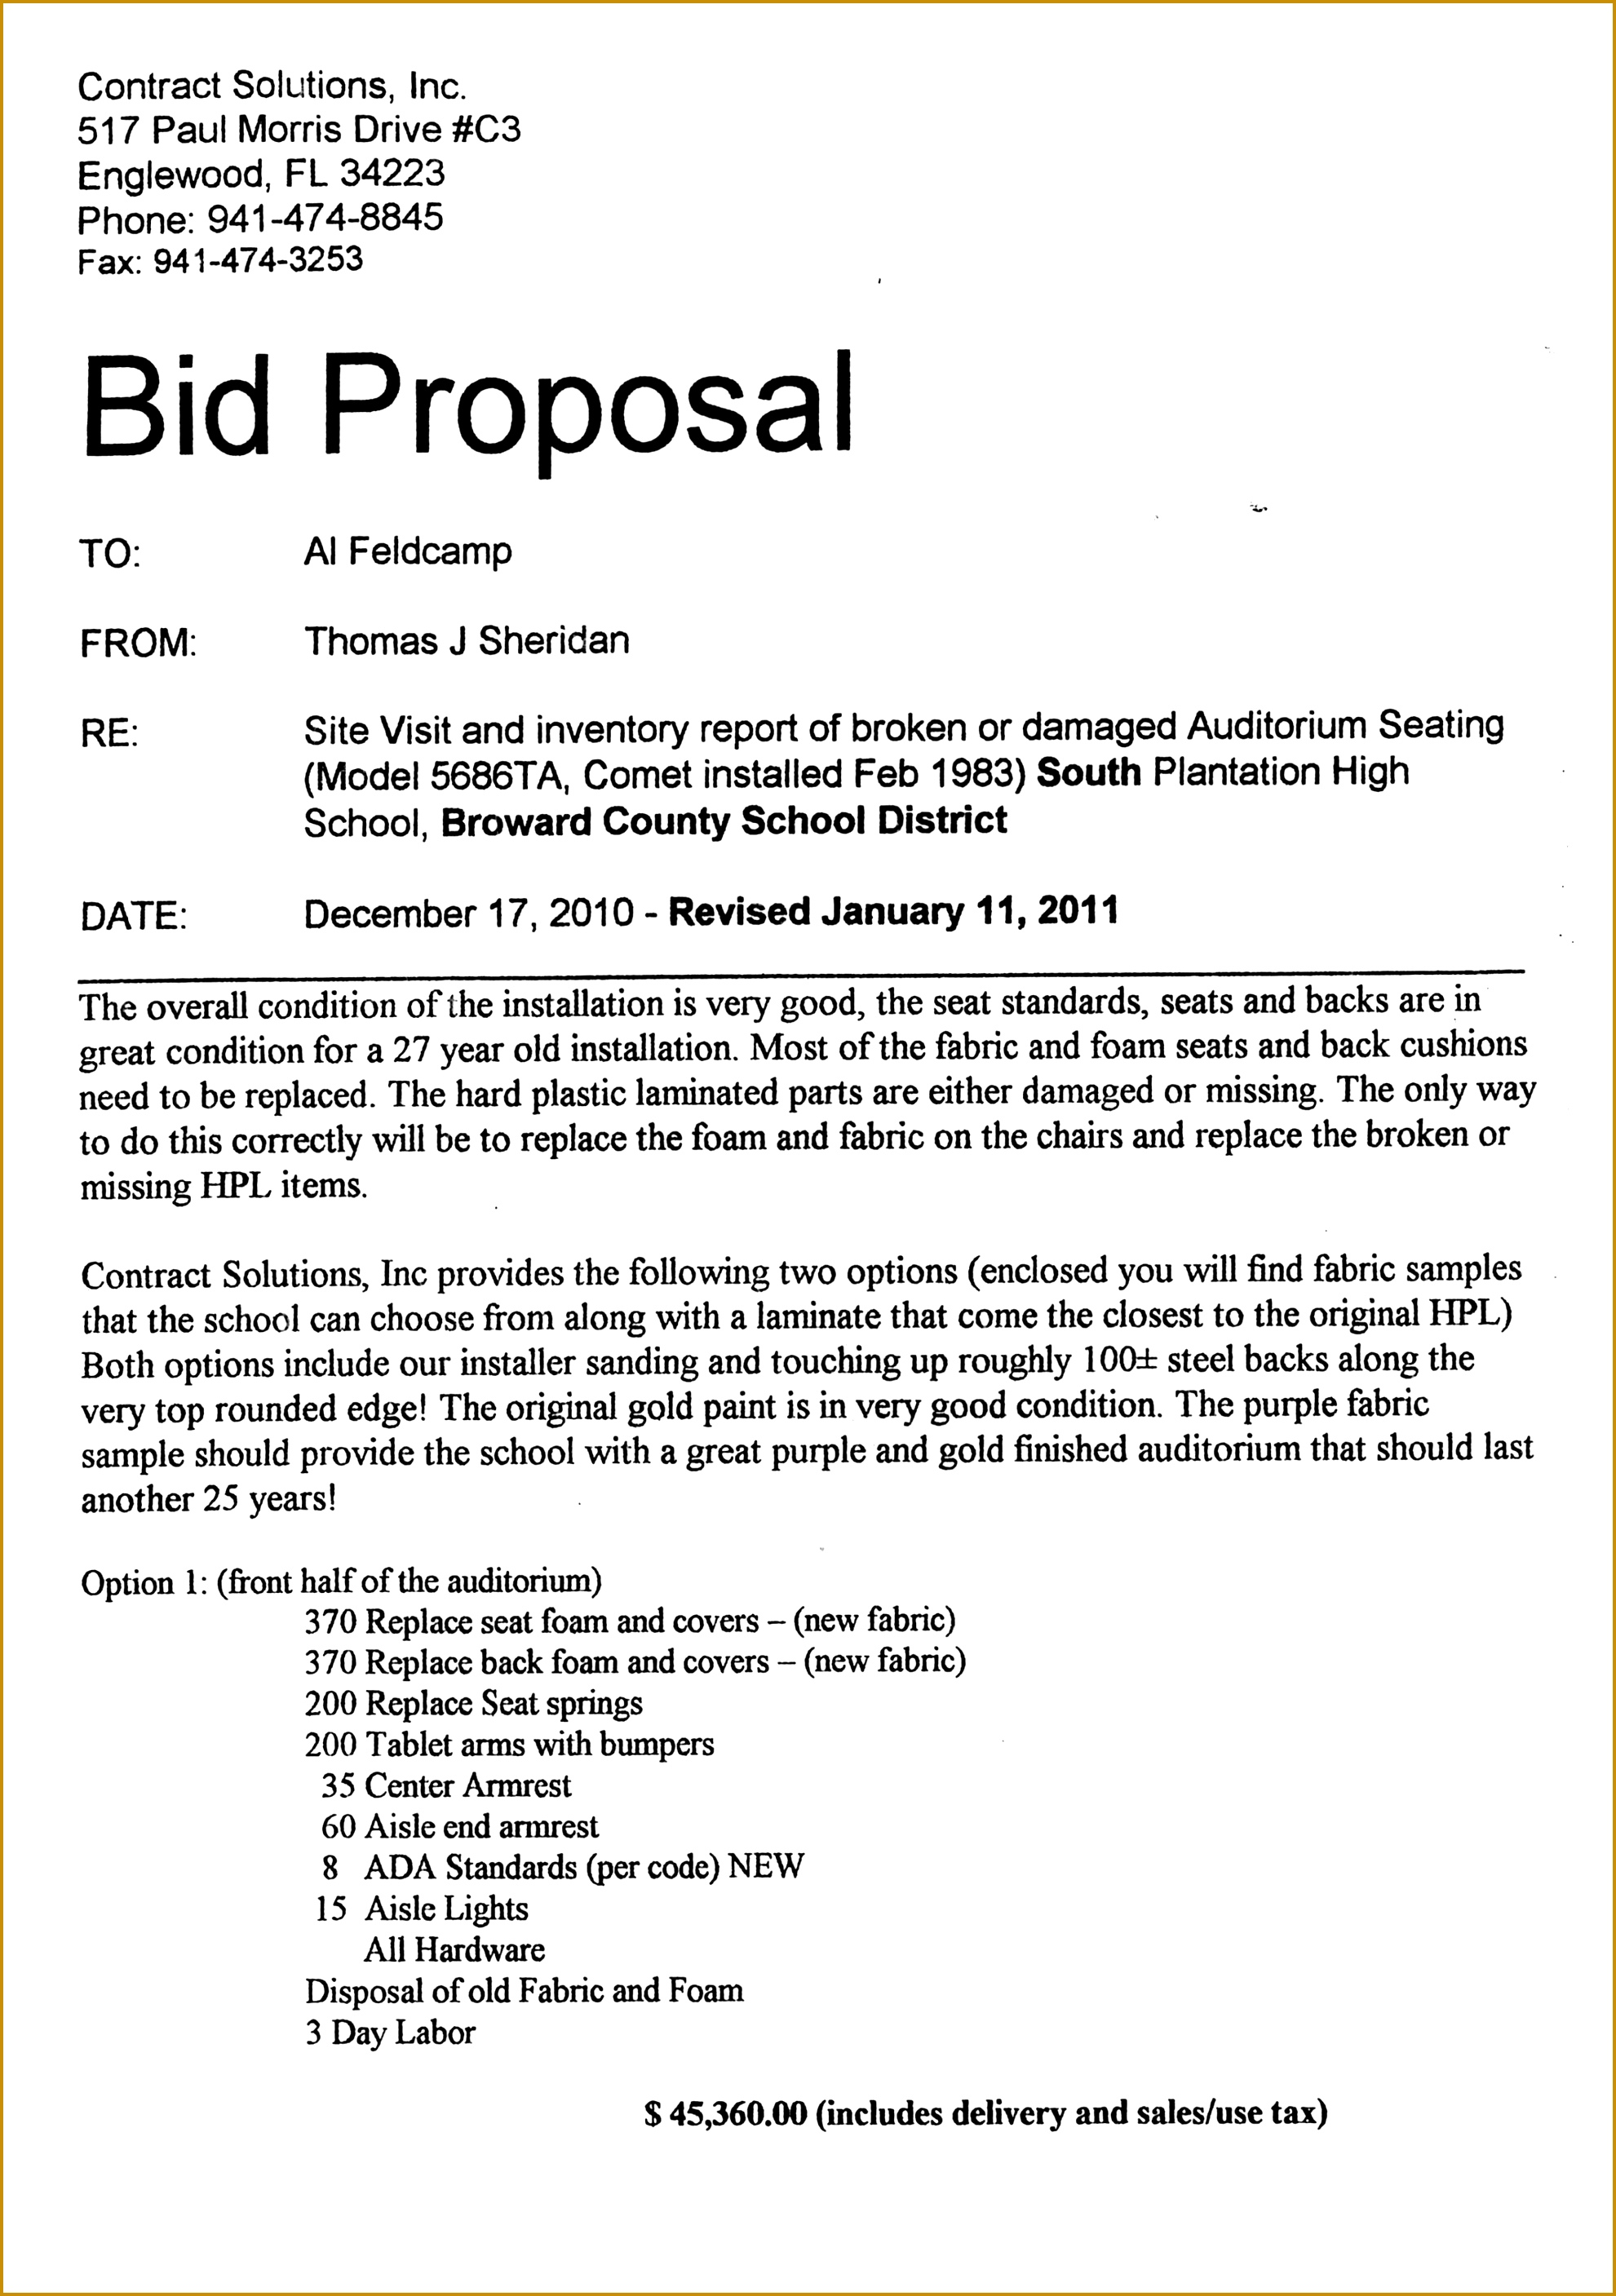 Bid Proposal Sample Lovable Rfp Cover Letter Sample Proposal Request For Template ely Bmp 28151981